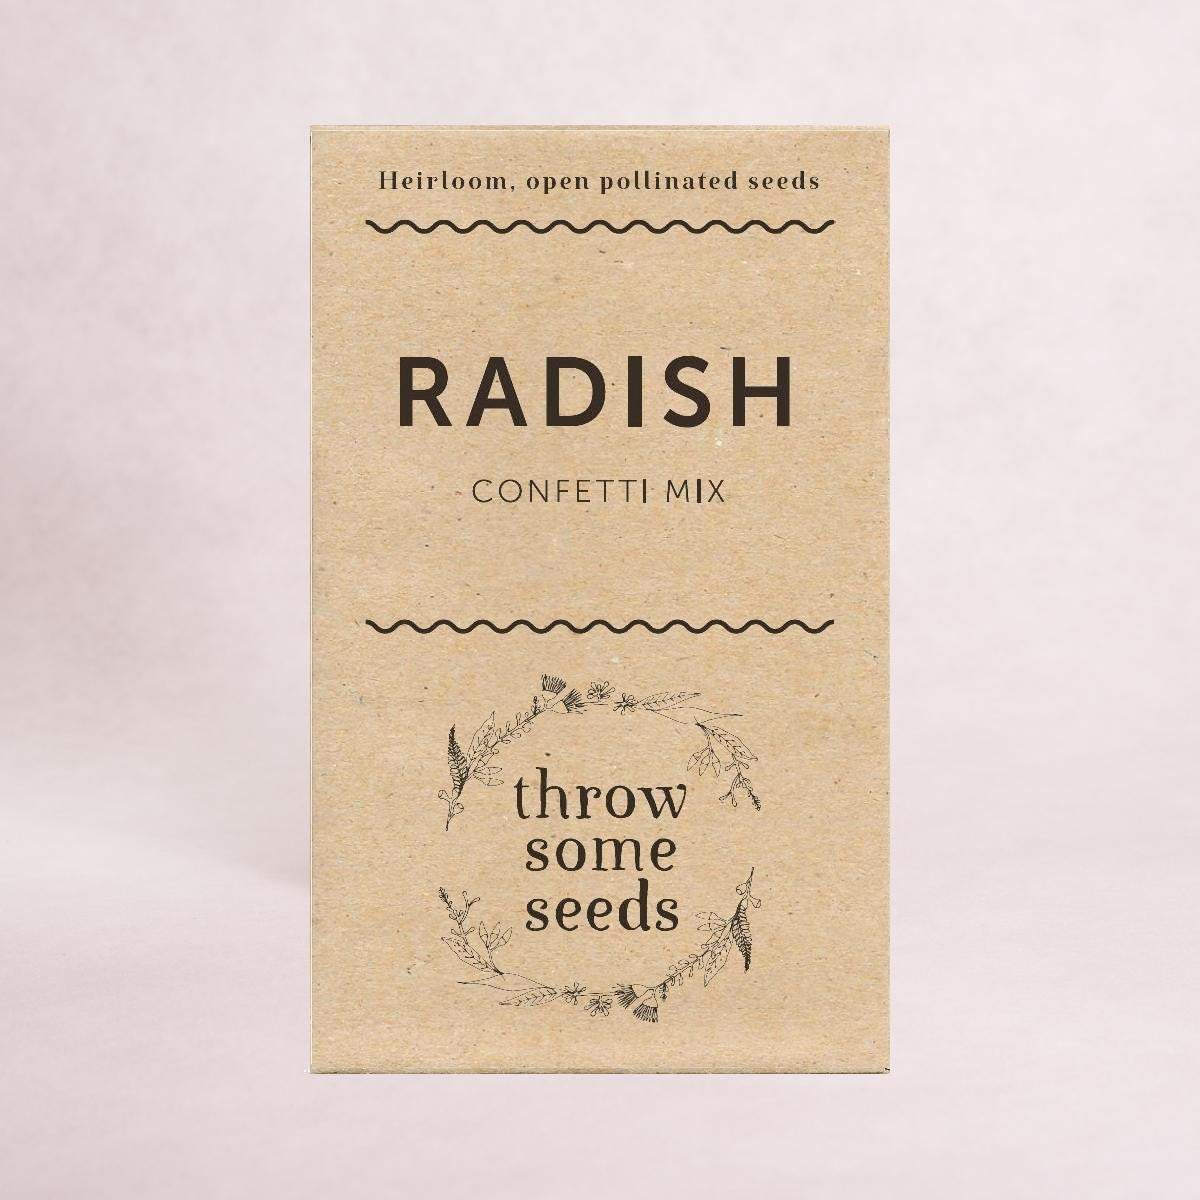 Radish (Confetti Mix) - Heirloom Seeds - Throw Some Seeds